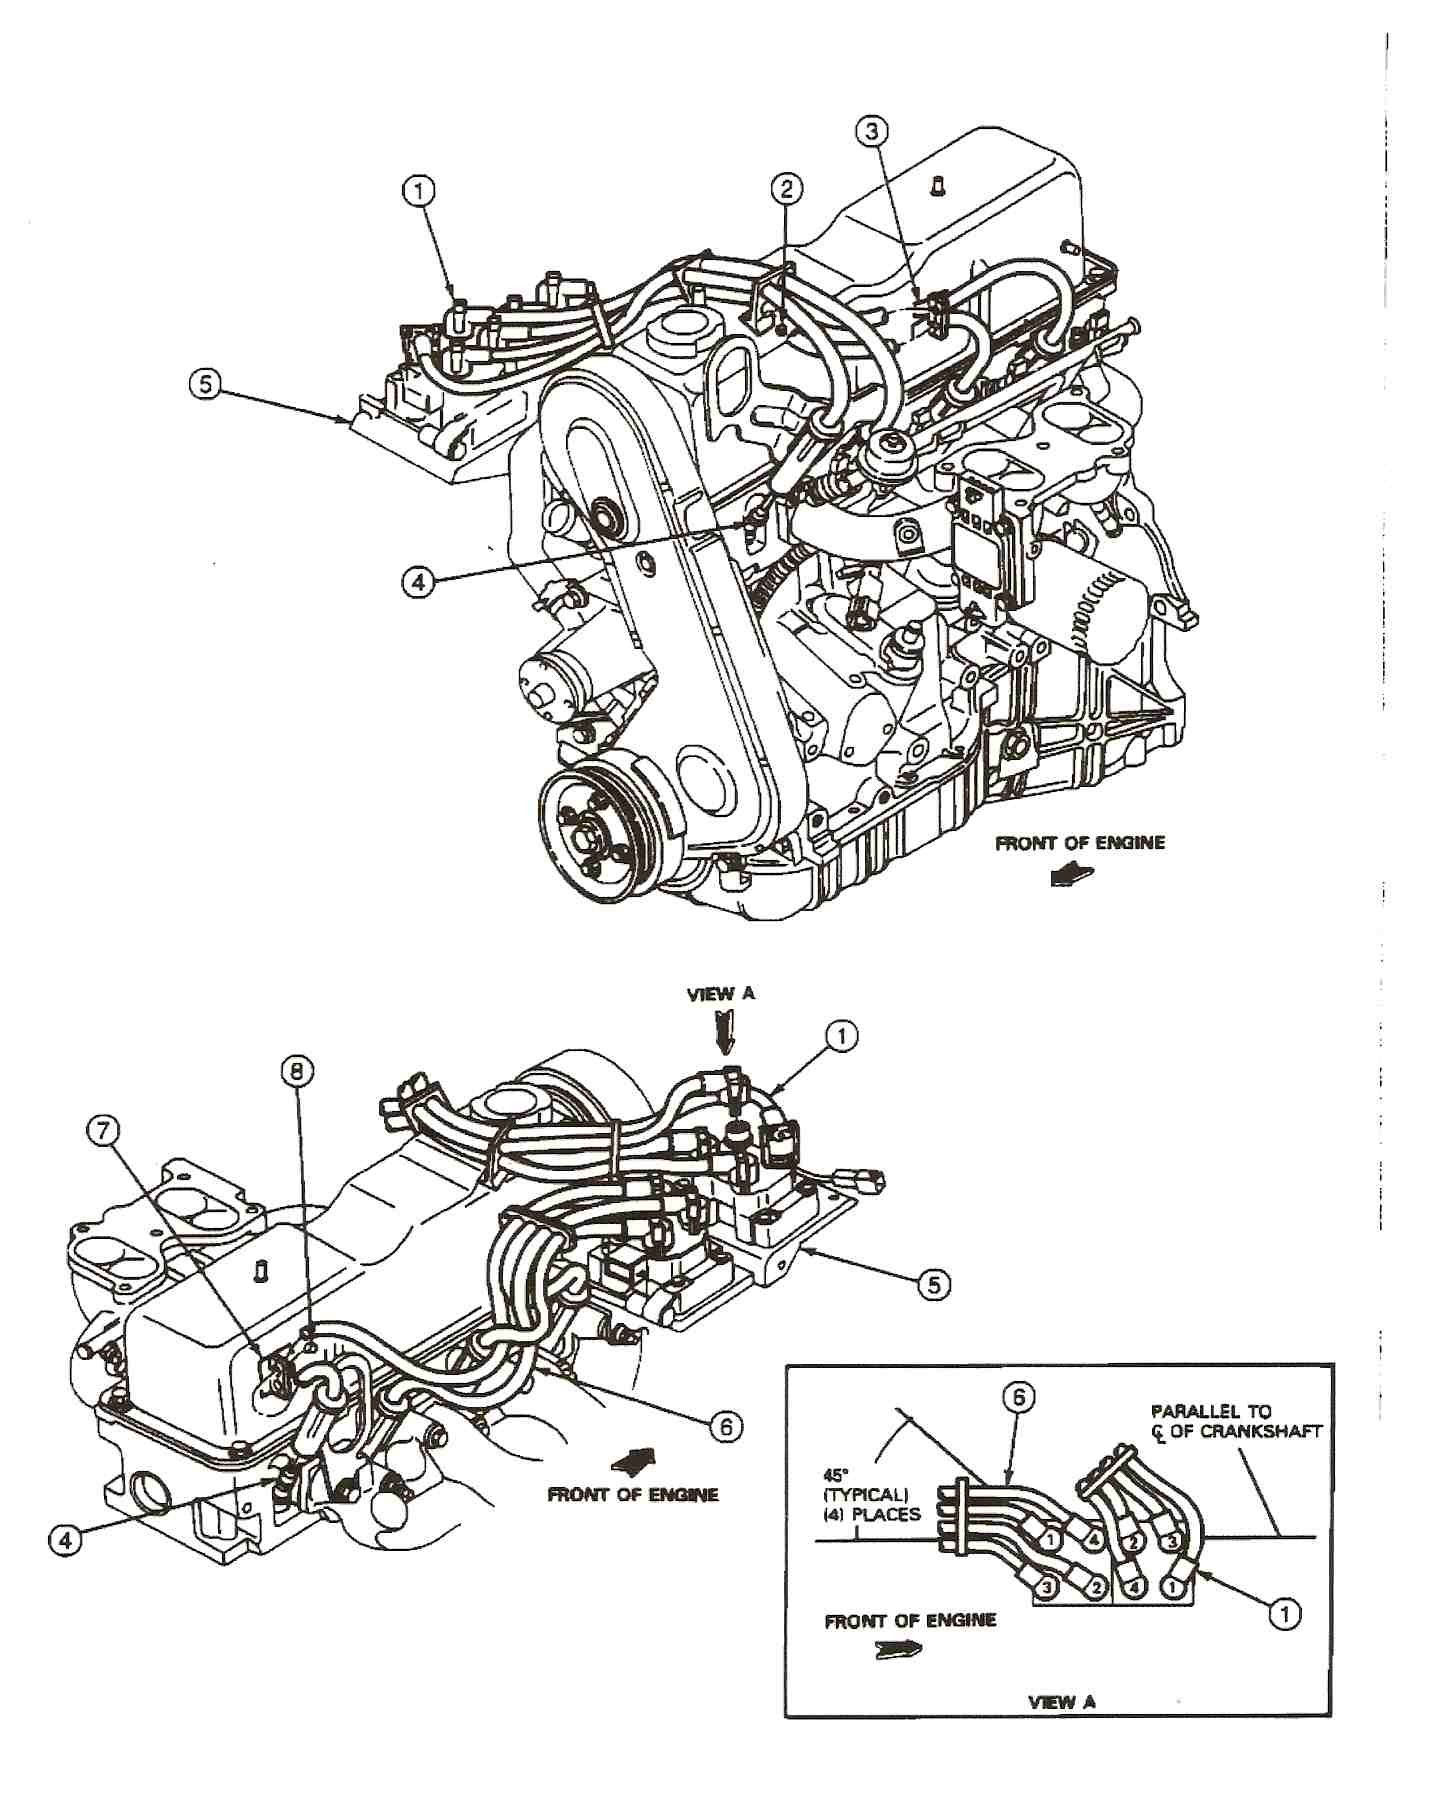 2001 Mazda B3000 Fuse Diagram Just Another Wiring Blog B2300 B4000 Engine Parts Library Rh 84 Vofond Org Radio Box